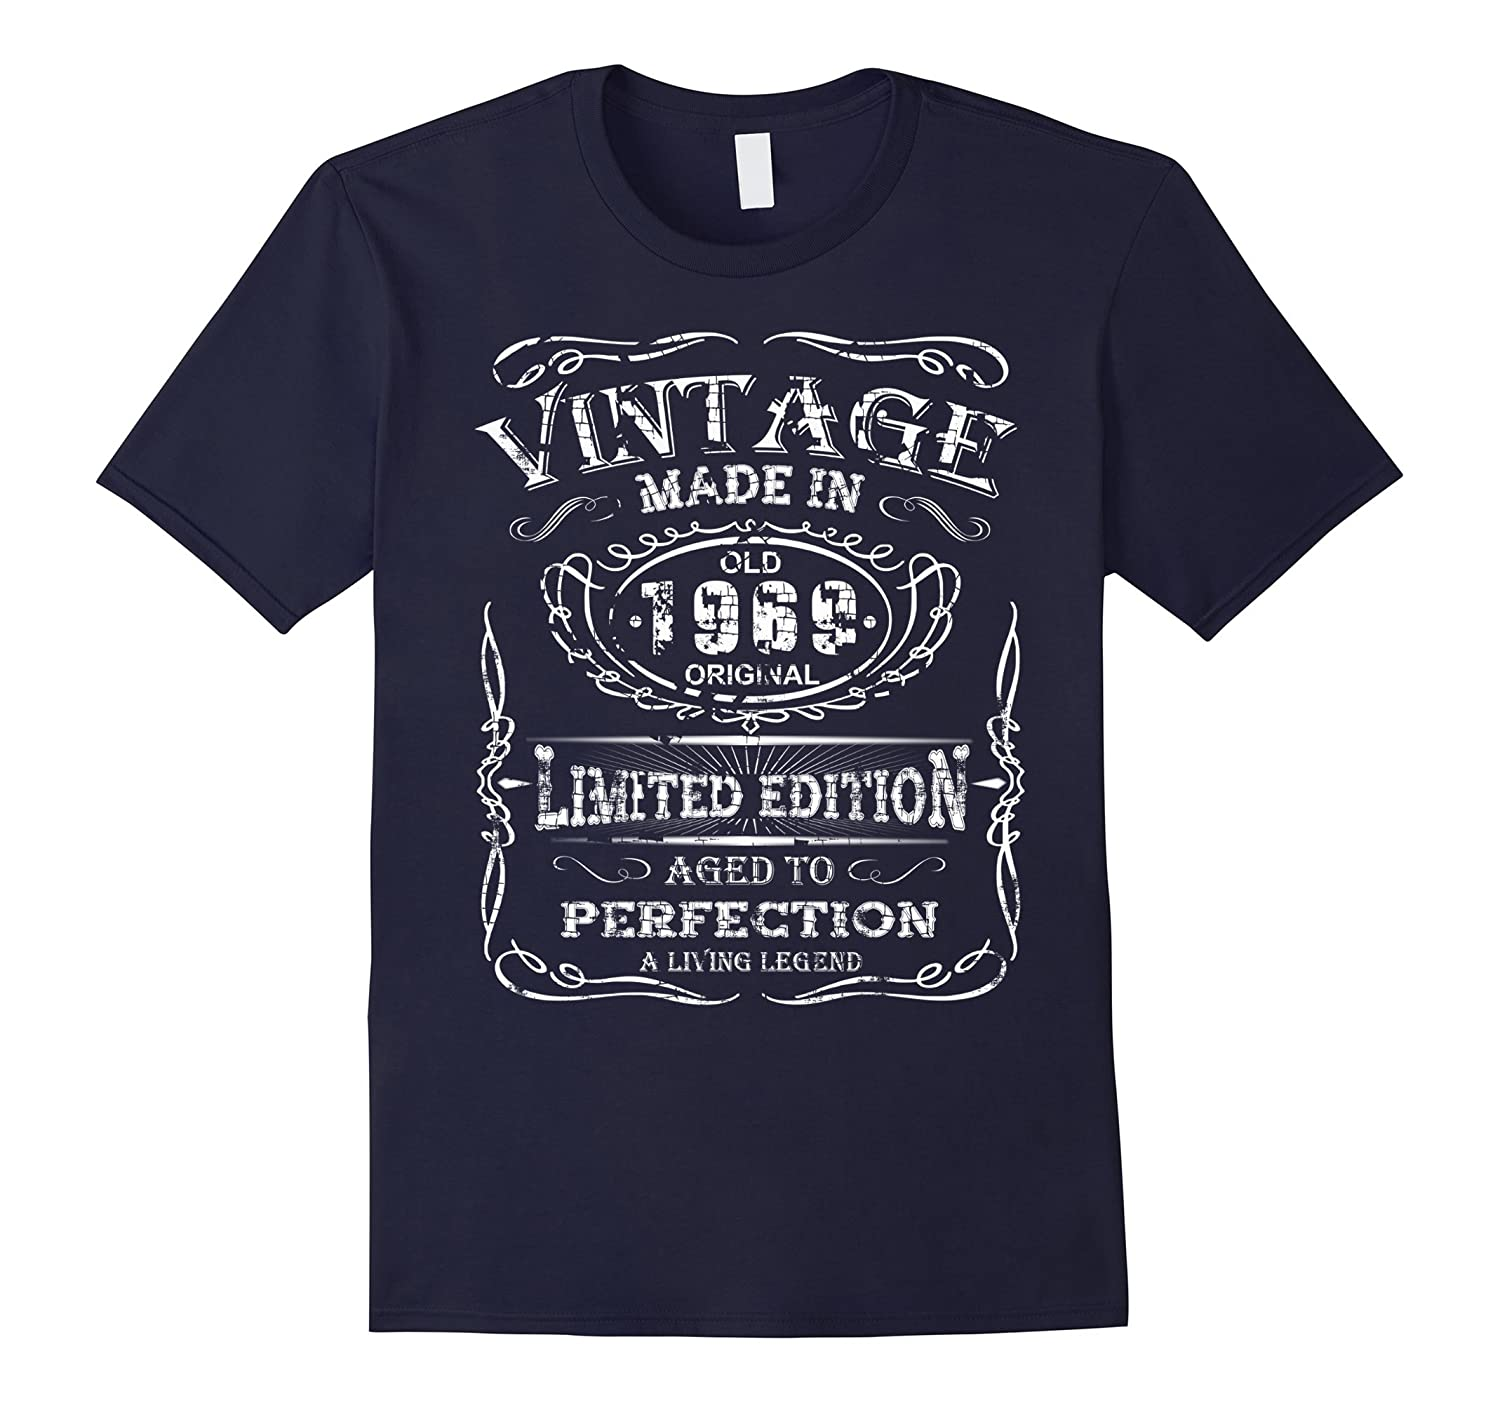 Vintage Premium Made In 1969 T-Shirt - Royalty Birthday Gift-RT